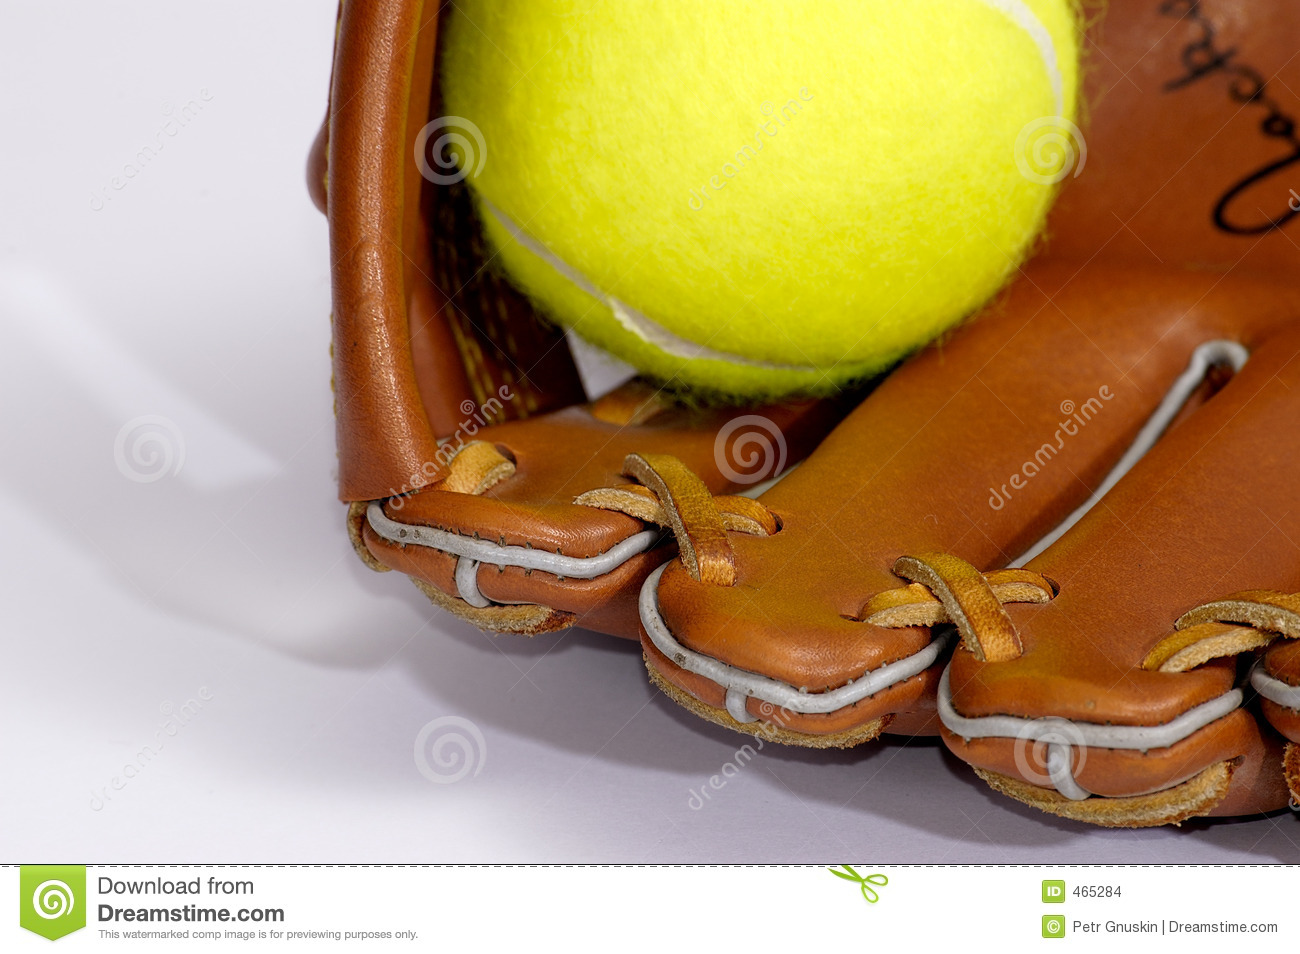 Tennis ball and glove